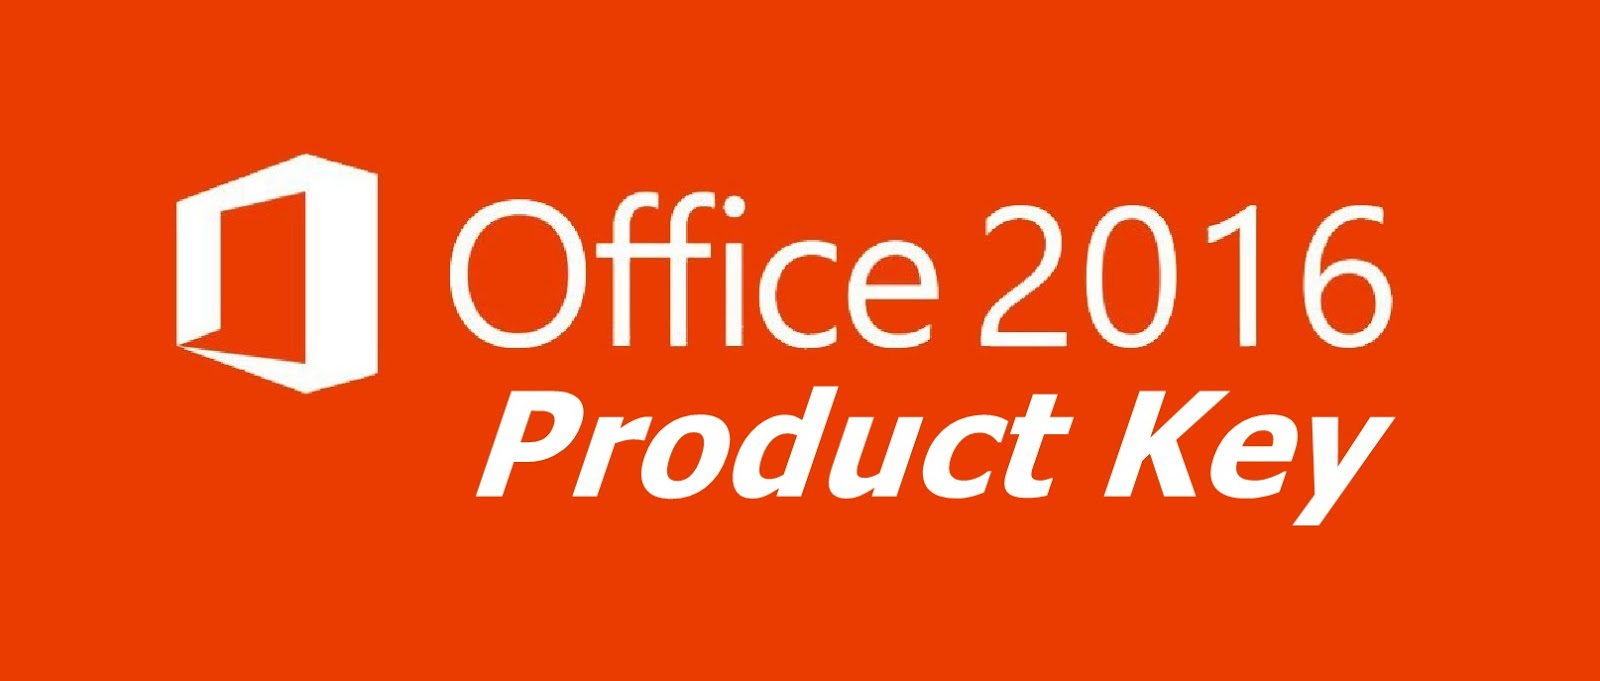 free excel product key 2018